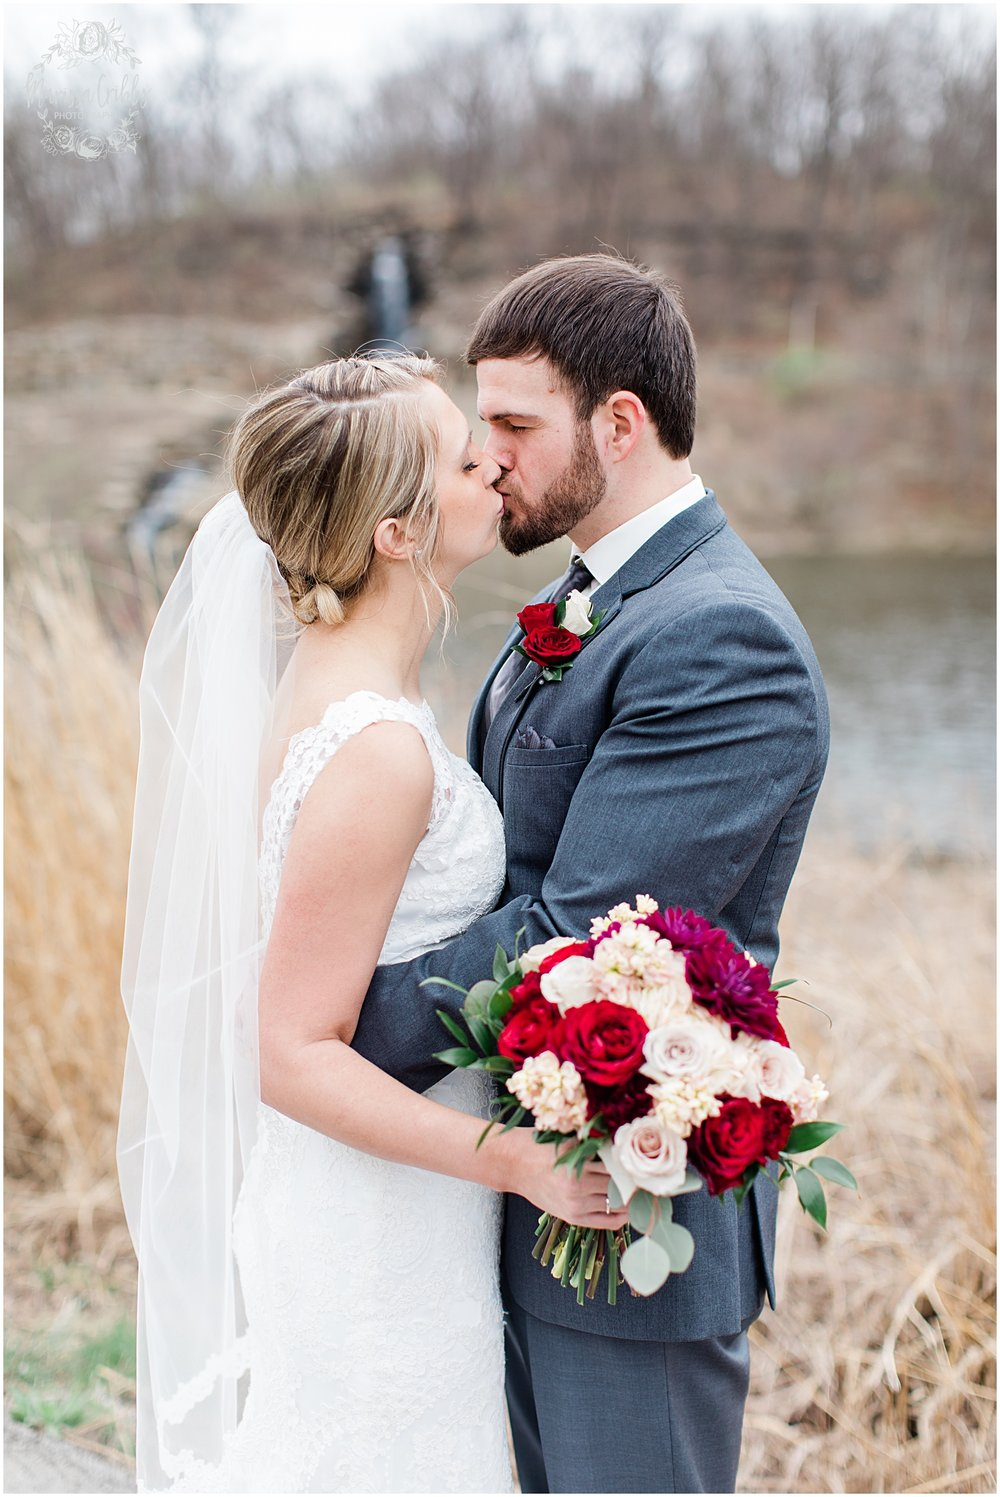 KAT & RYAN MARRIED | PAVILION EVENT SPACE | MARISSA CRIBBS PHOTOGRAPHY_4557.jpg